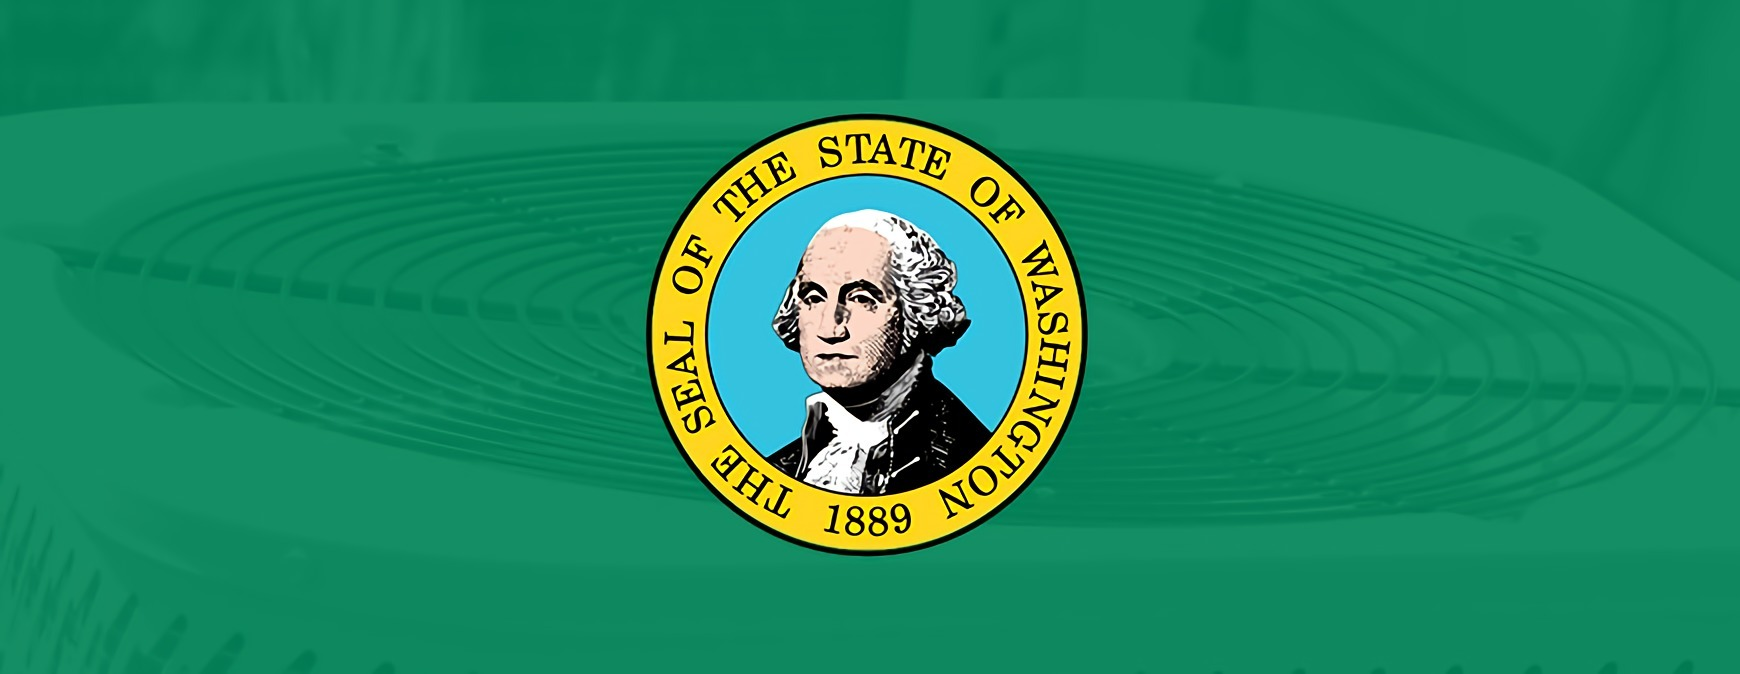 washington state flag in from of ac